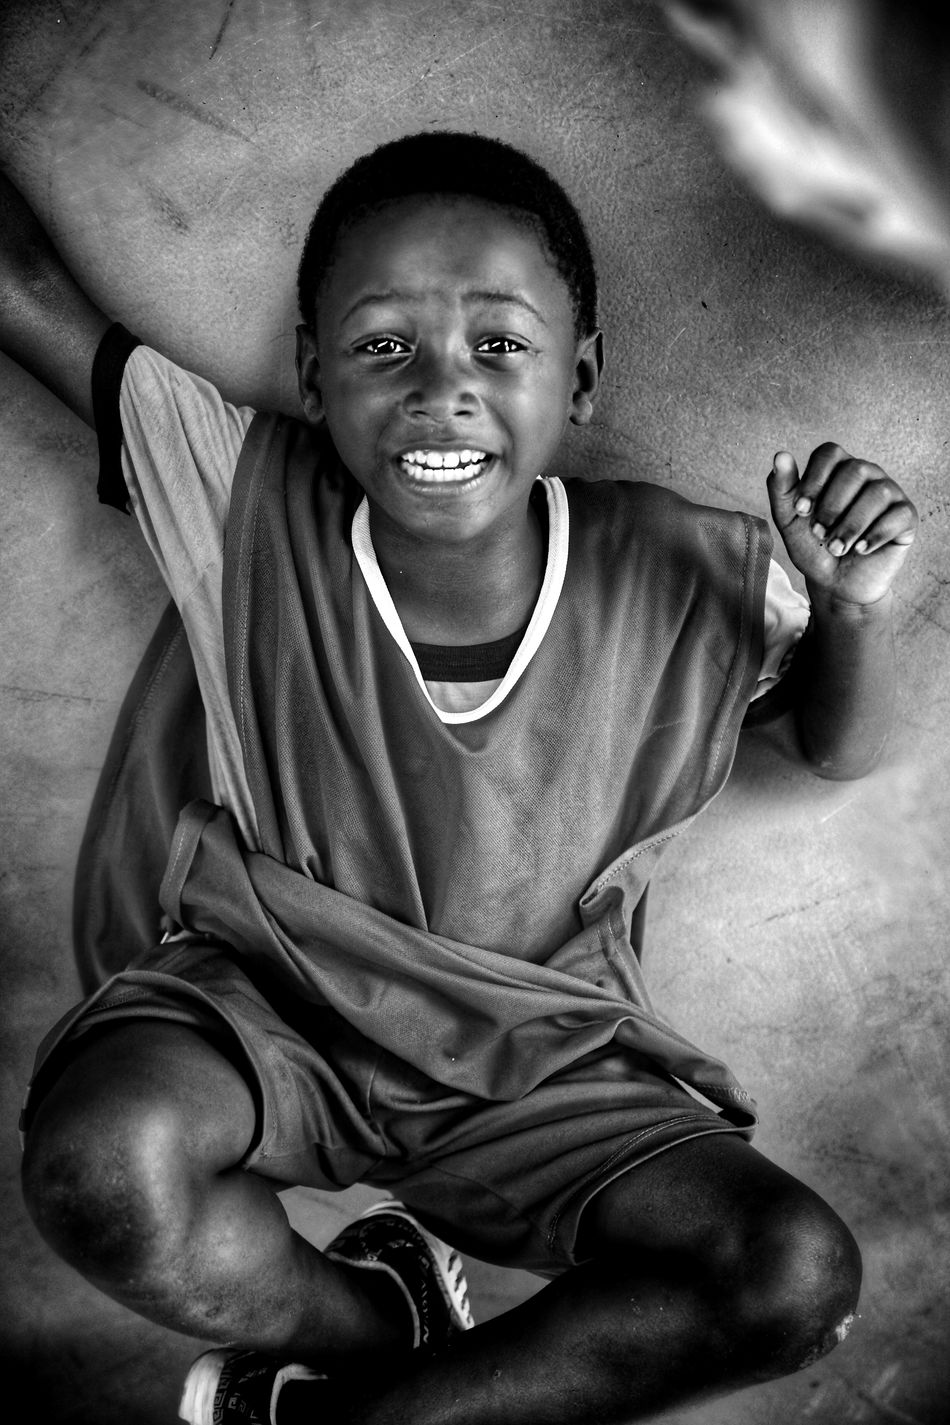 High Angle View One Person Lying Down Relaxation Lifestyles Smiling Happiness Cheerful Portrait People Close-up Leisure Activity Black & White Black And White Social Photography Children Photography Children Social Documentary Freshness